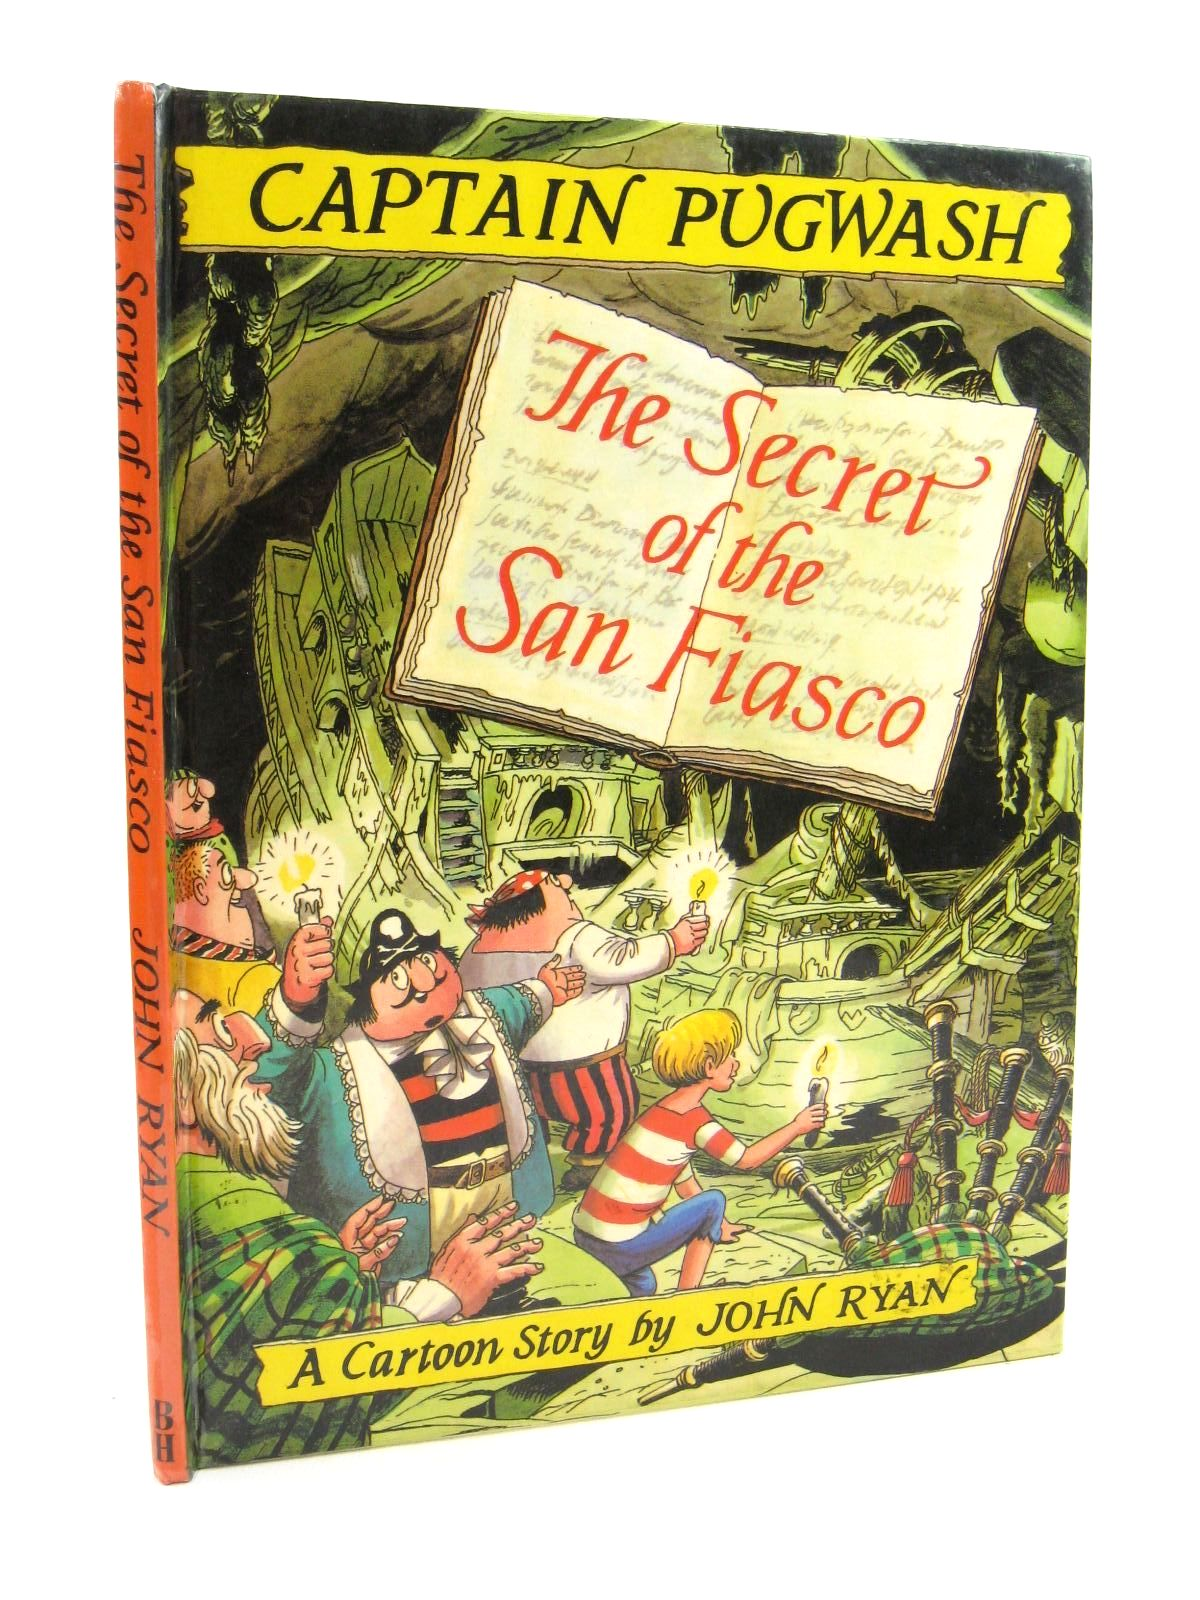 Photo of CAPTAIN PUGWASH - THE SECRET OF THE SAN FIASCO written by Ryan, John illustrated by Ryan, John published by The Bodley Head Ltd (STOCK CODE: 1316785)  for sale by Stella & Rose's Books